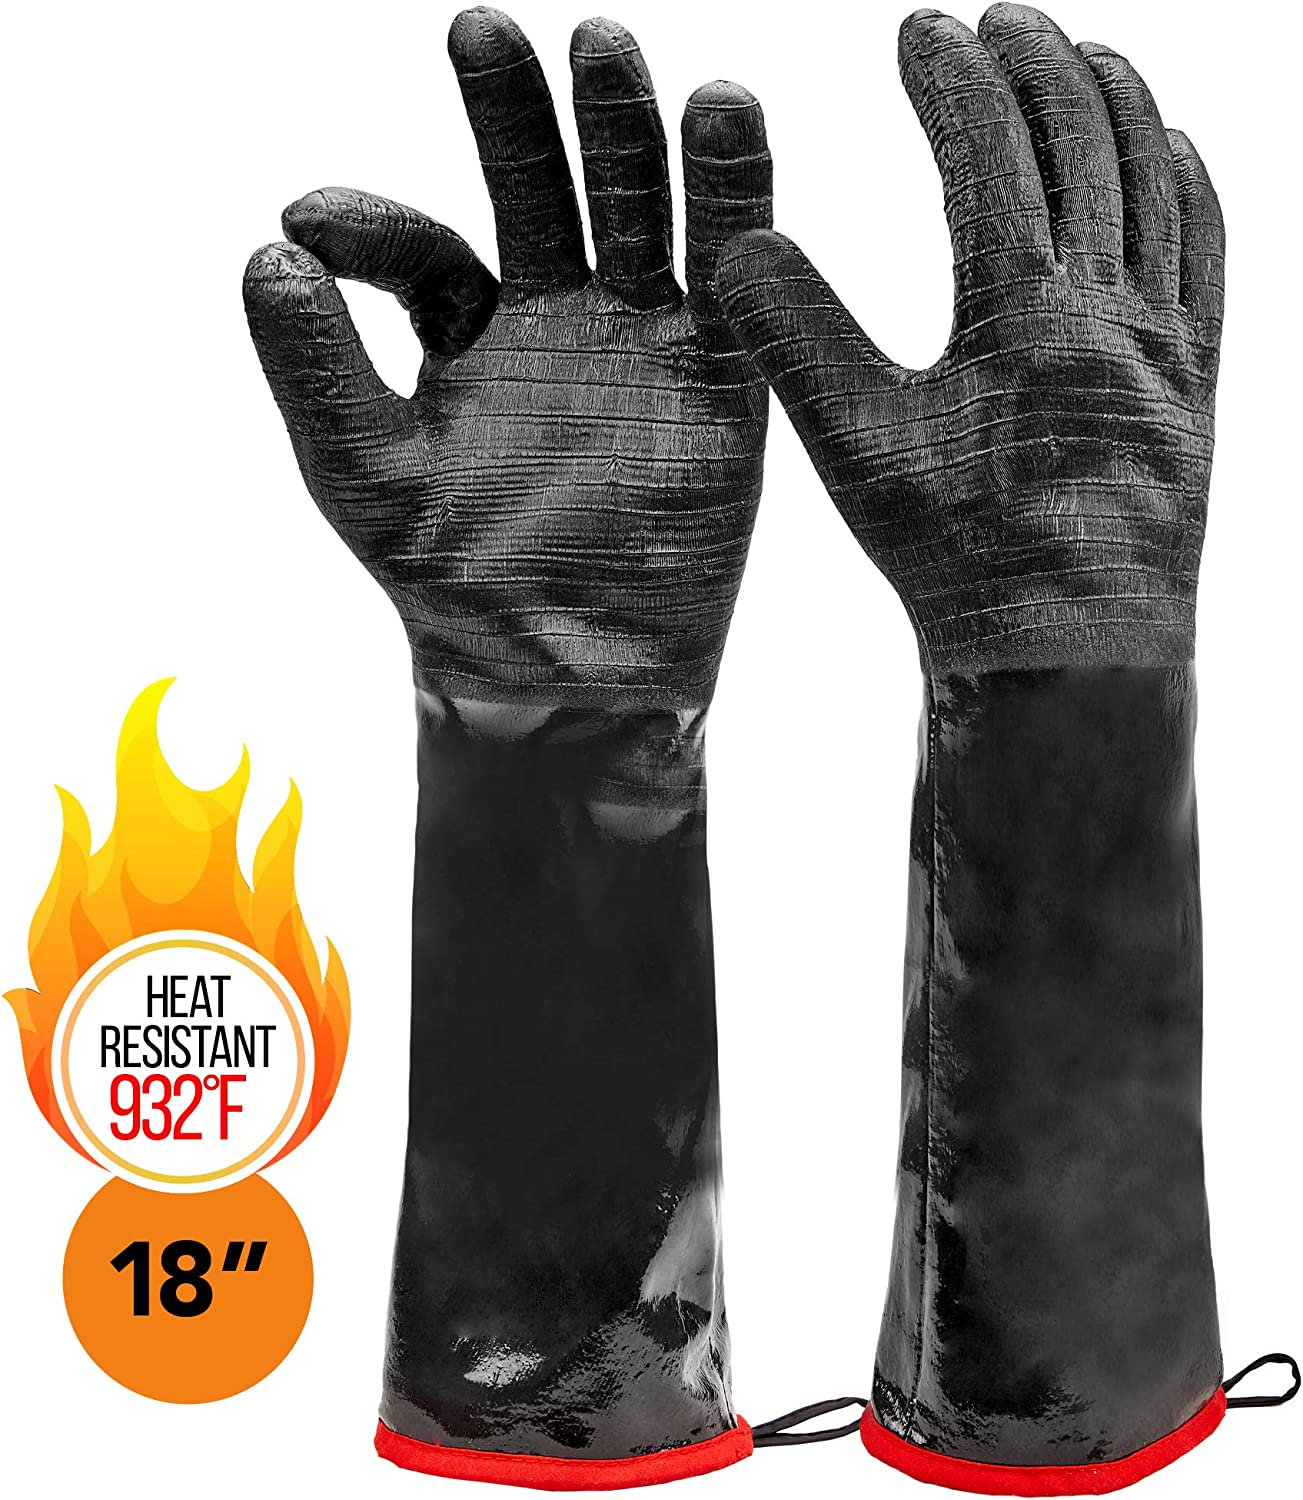 "Heatsistance Heat Resistant BBQ Gloves,Grill Gloves,18"" Long Sleeve, Medium - Textured Grip to Handle Wet, Greasy or Oily Foods - Fire and Food Safe Oven Mitts for Smoker, Grills and Barbecue"